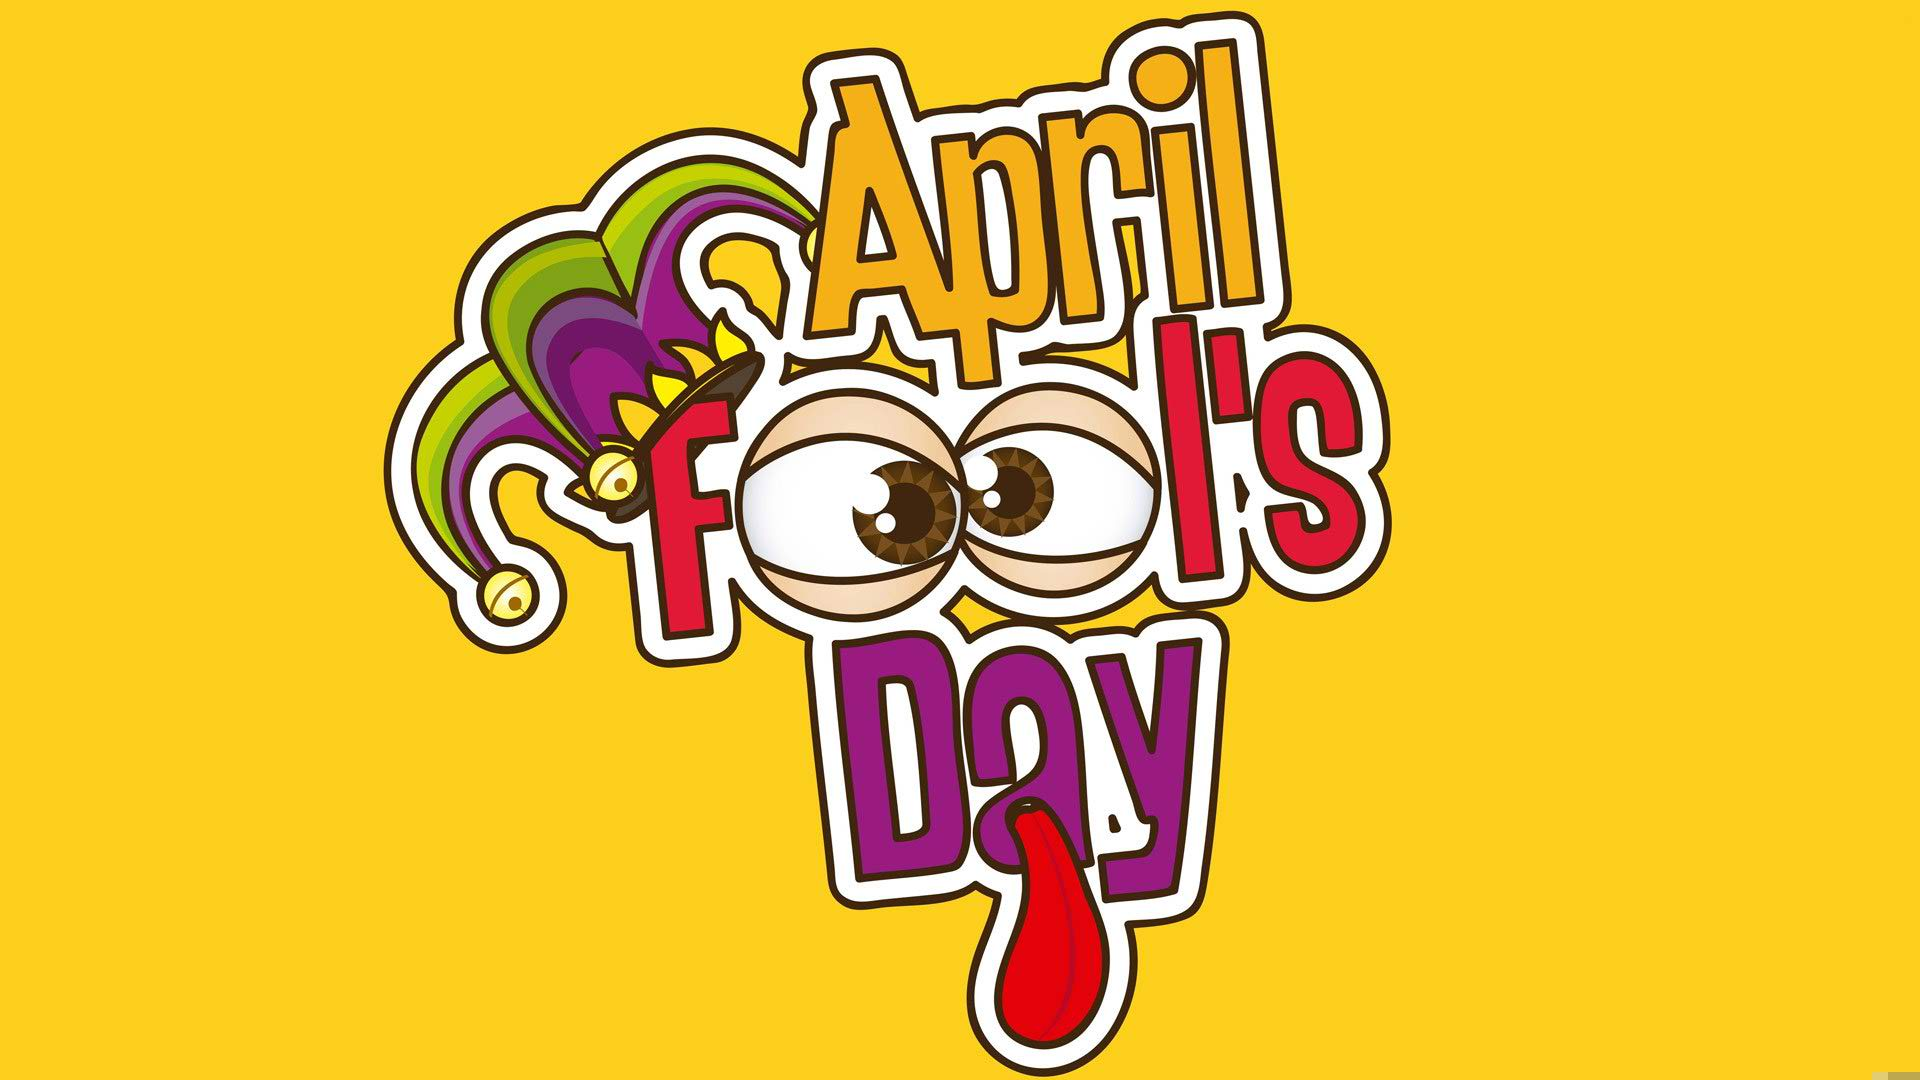 Pictures april fool day HD wallpaper.